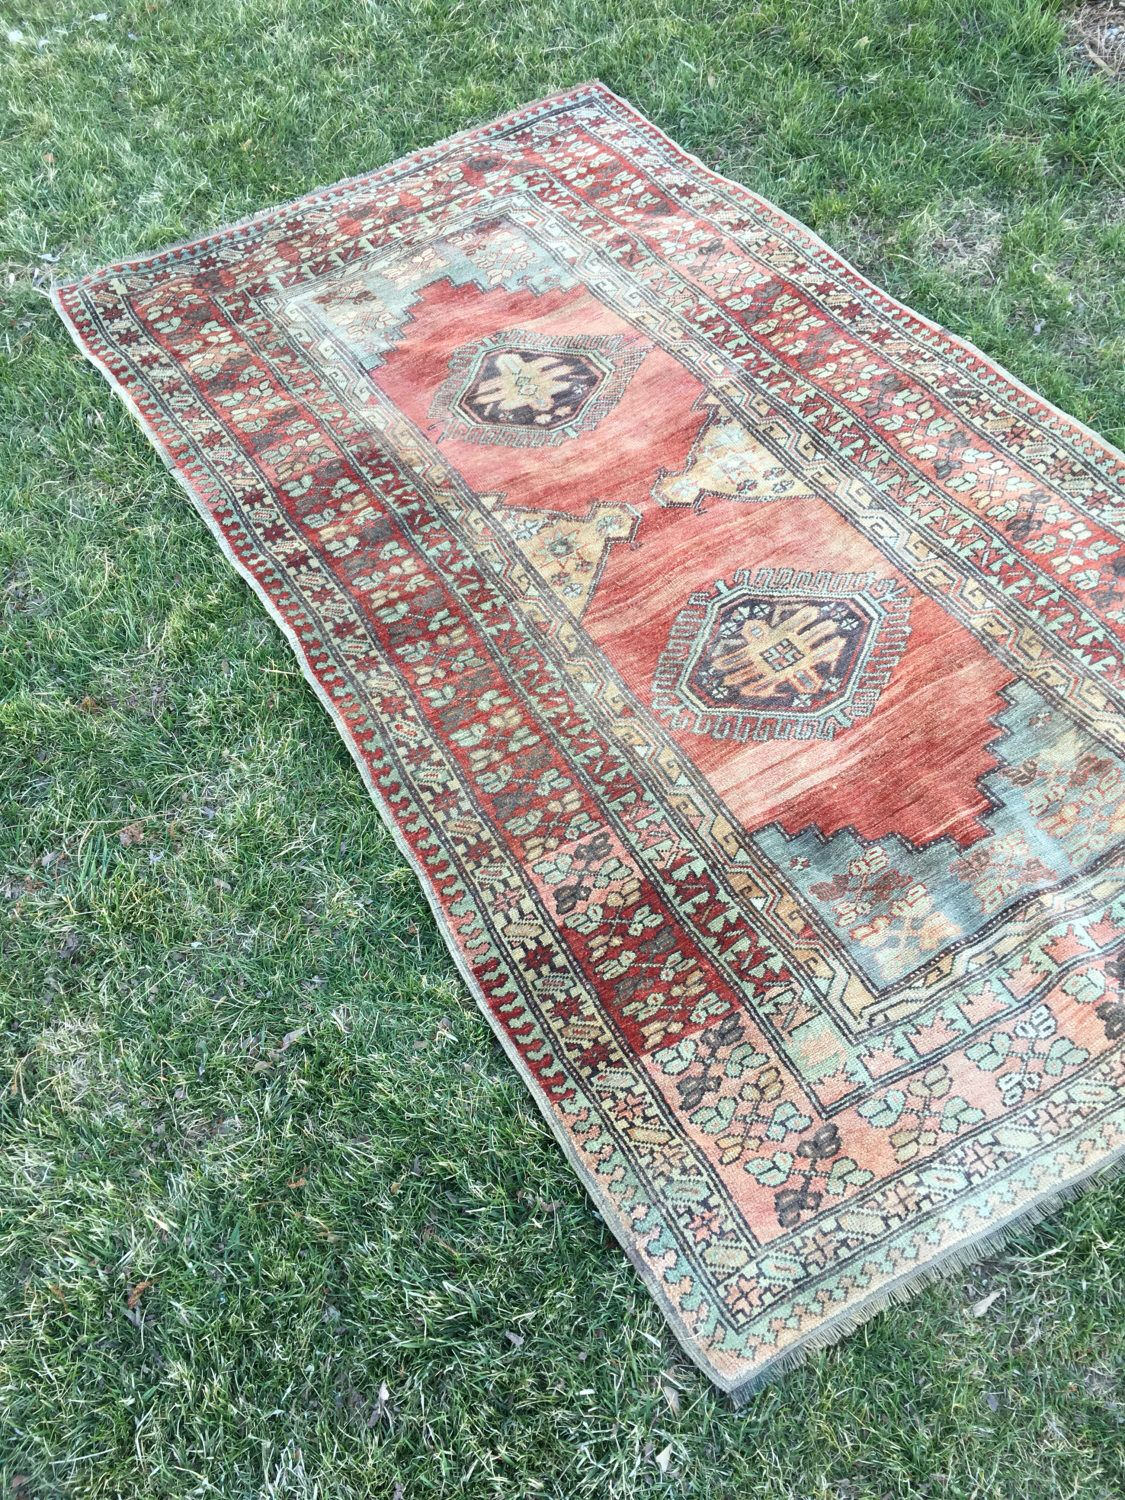 Soft Bright Colors Vintage Turkish Rug Organic Wool High Quality Home Decor Carpet Nursery Entryway Kitchen